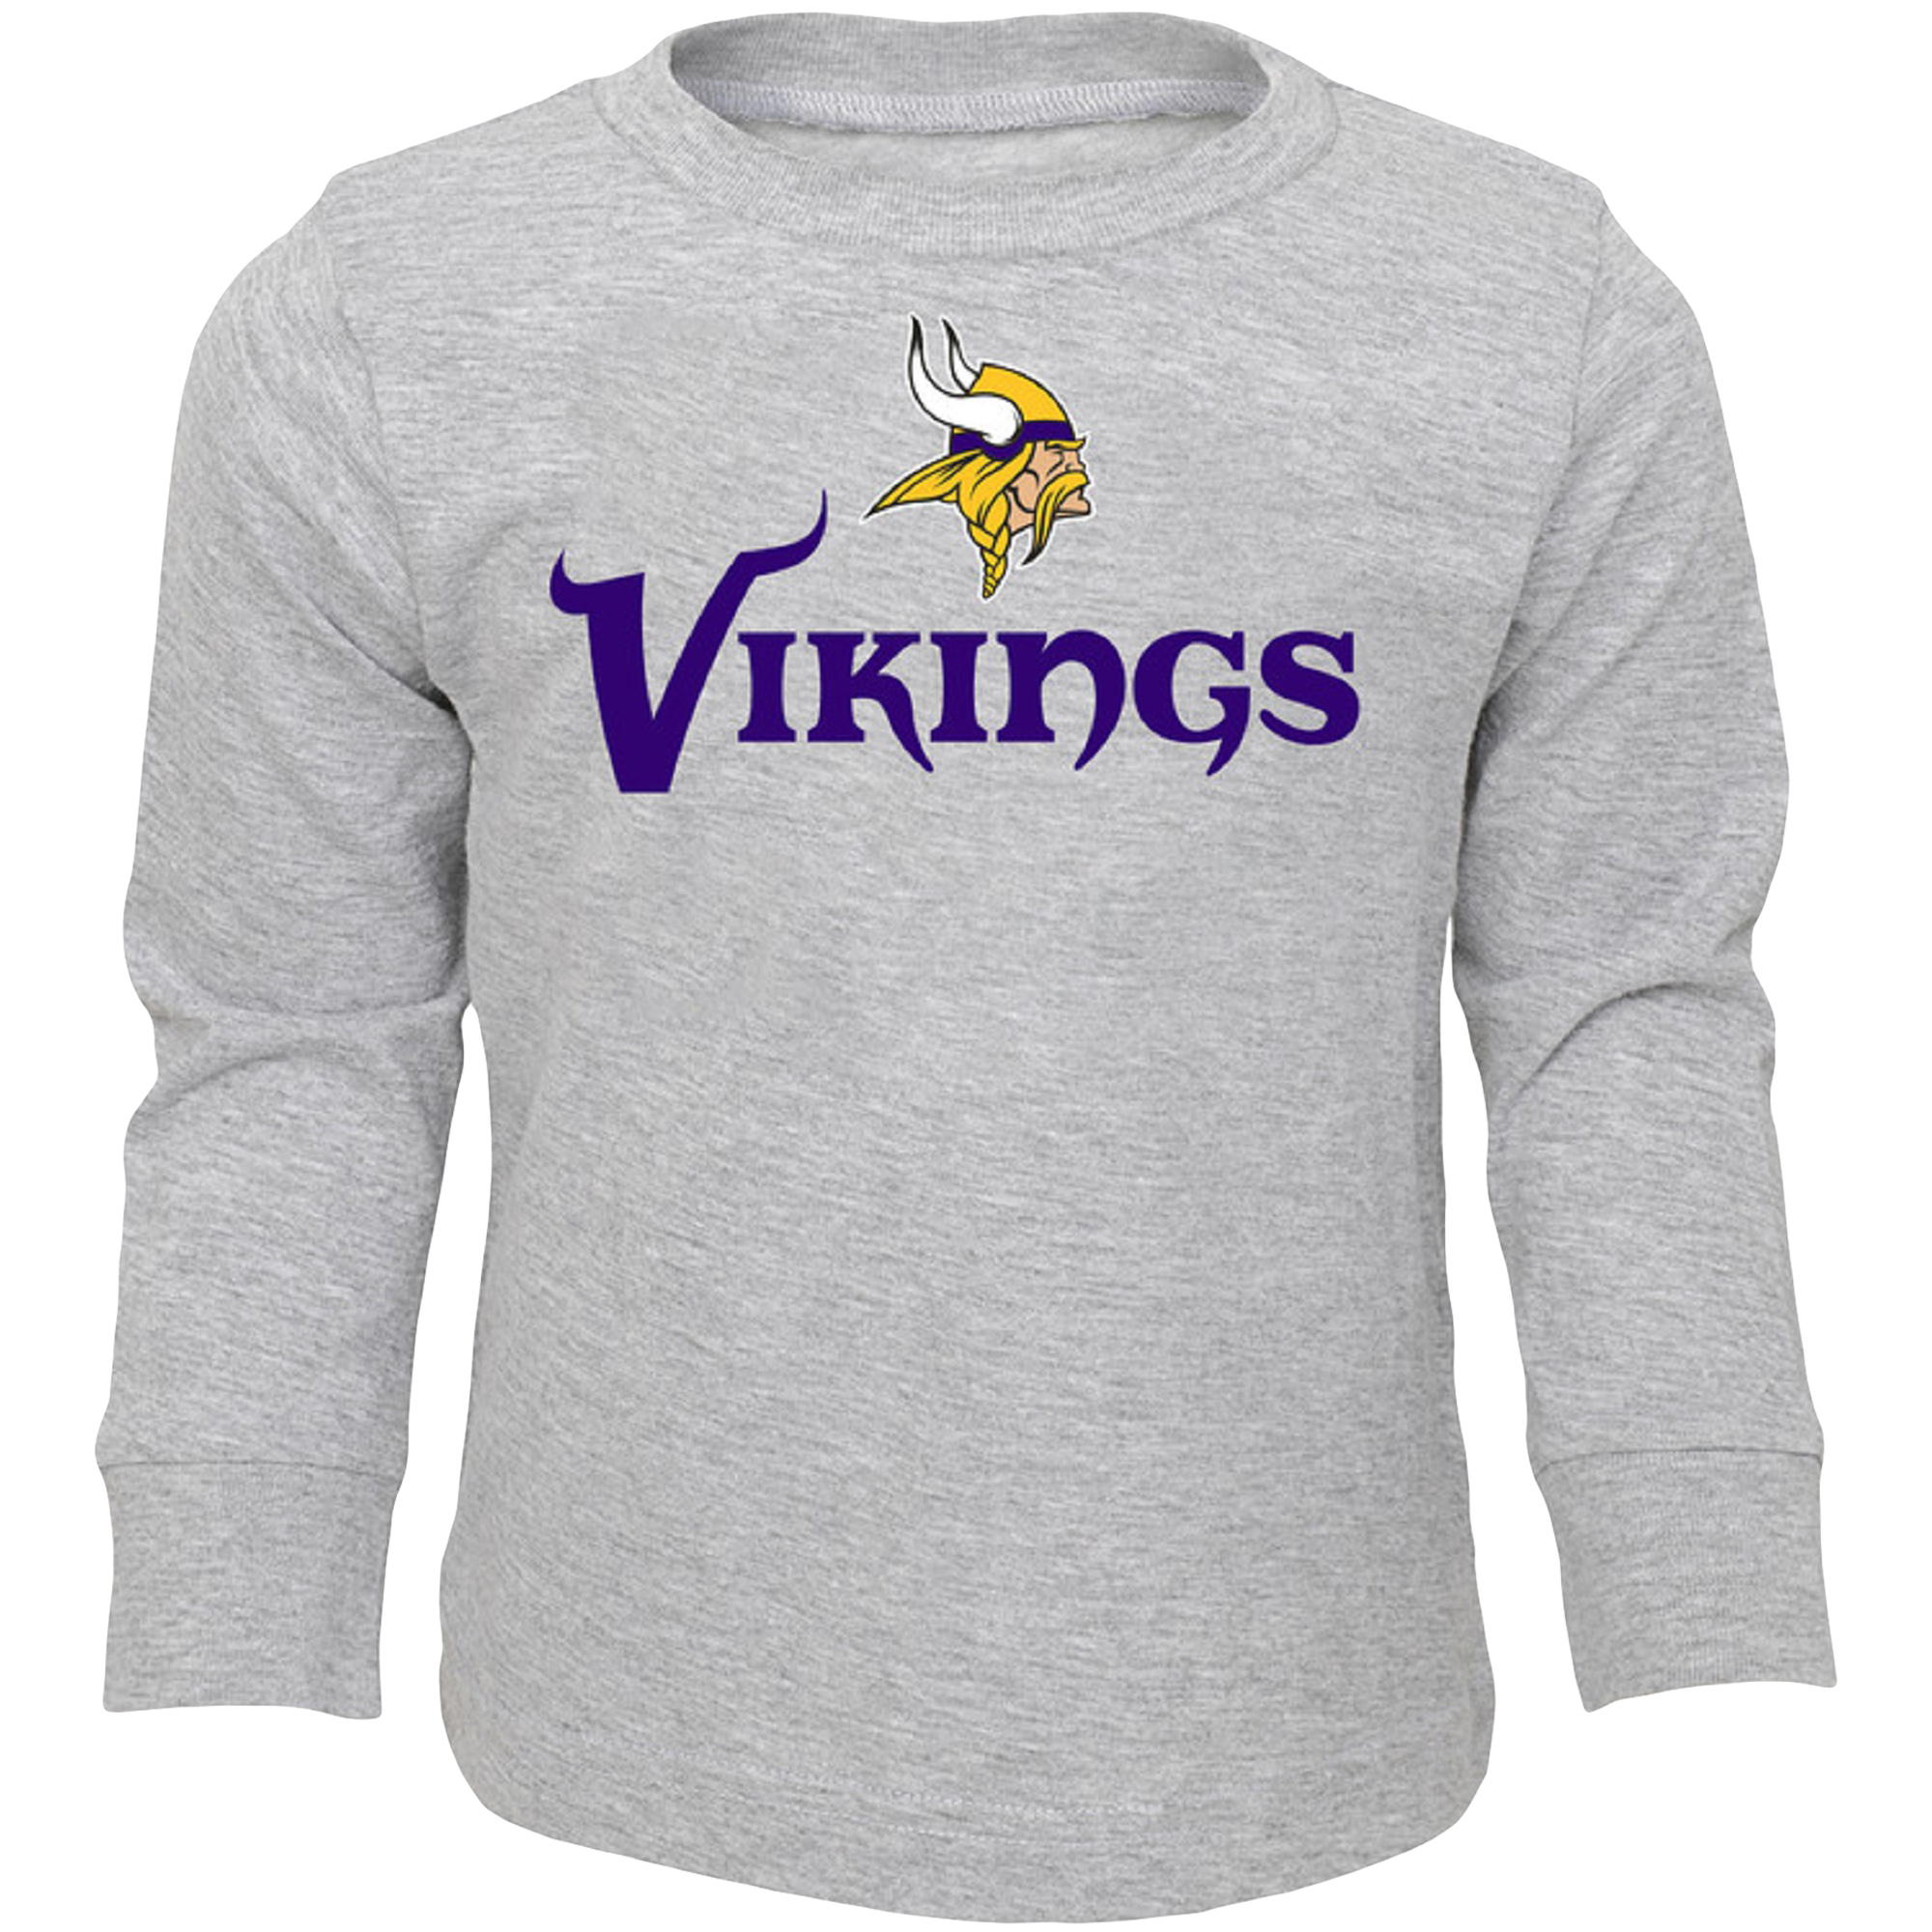 Infant Heathered Gray Minnesota Vikings Team Long Sleeve T-Shirt